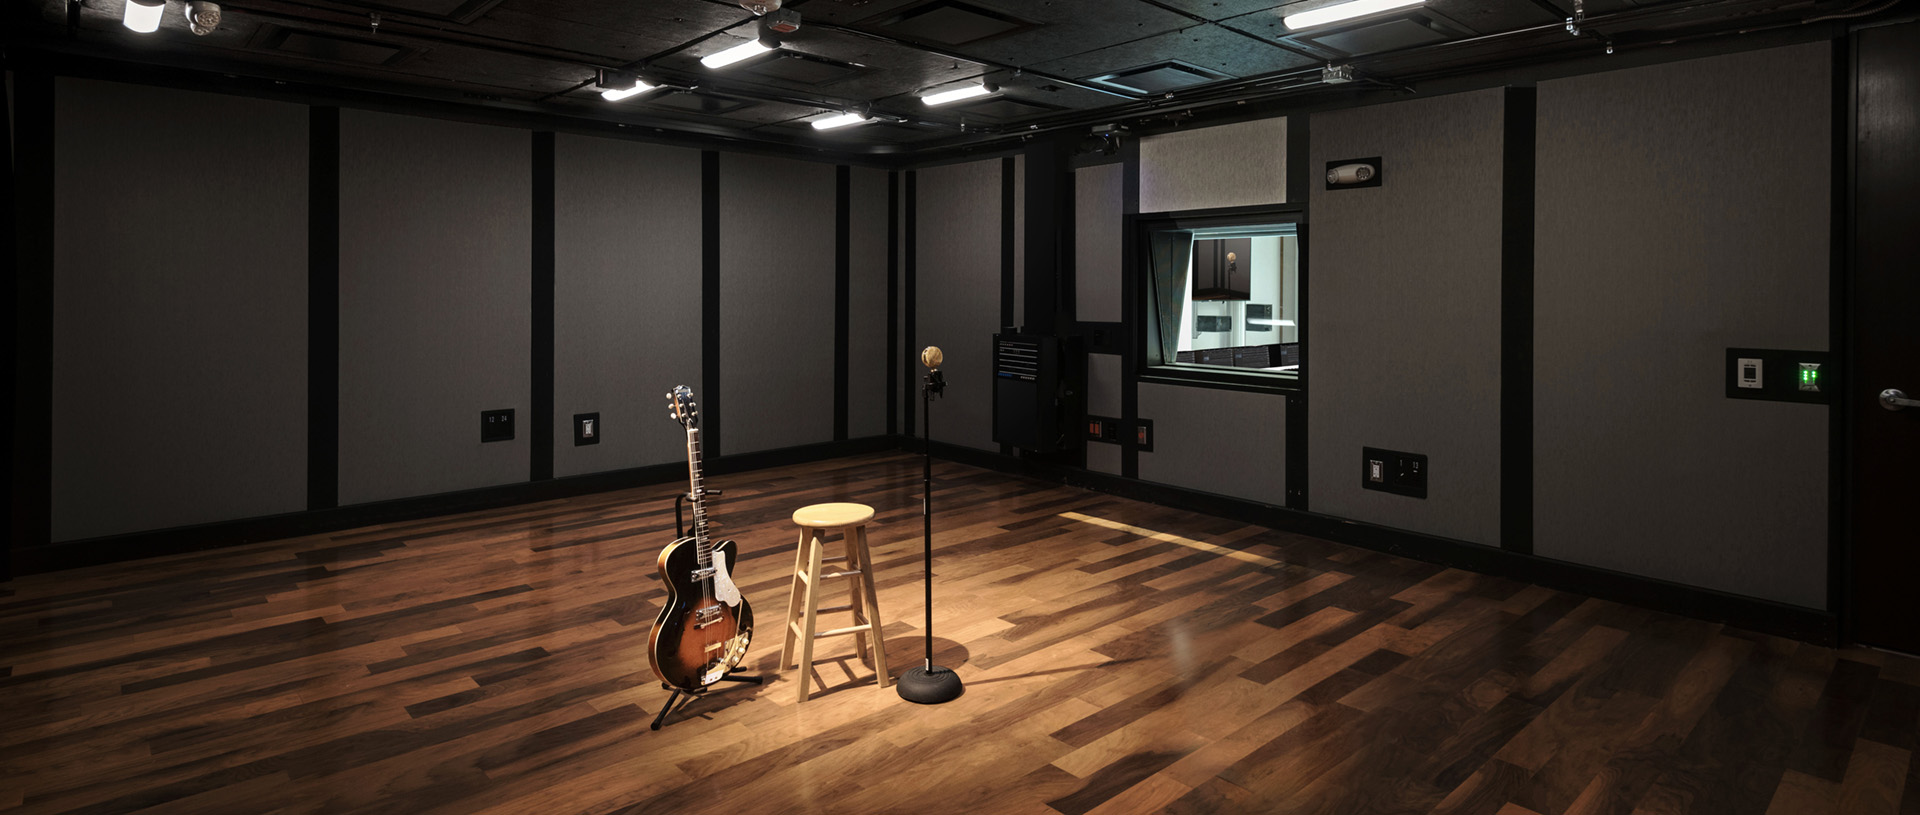 Recording Studio at SNEAKY BIG Studios